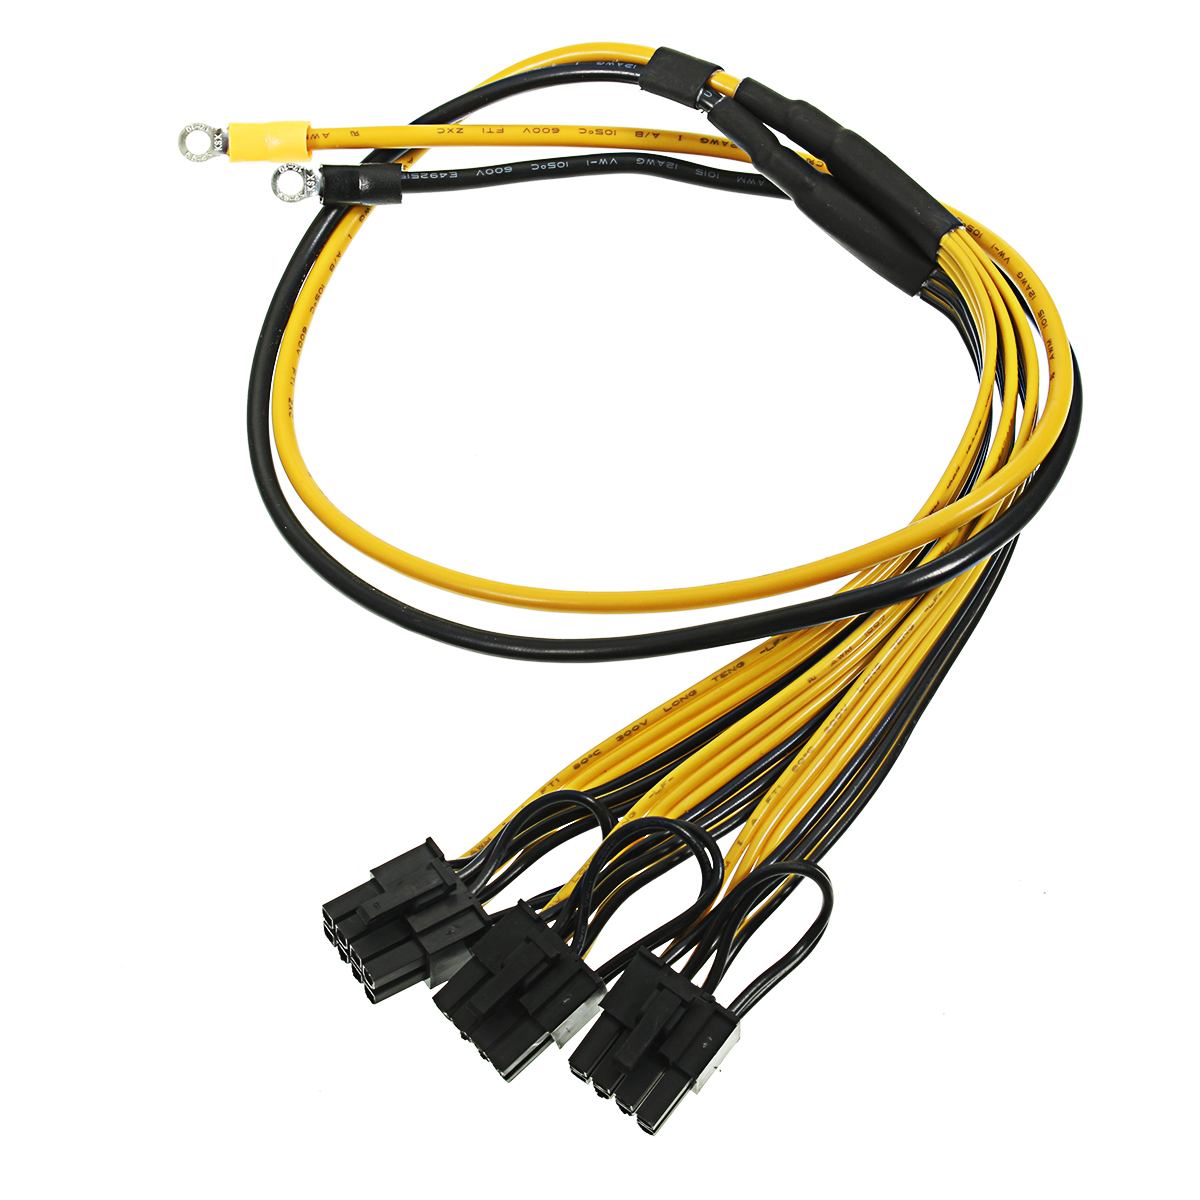 hight resolution of pci express graphics card connector pc power supply cable cpu molex 8pin to 2 pci